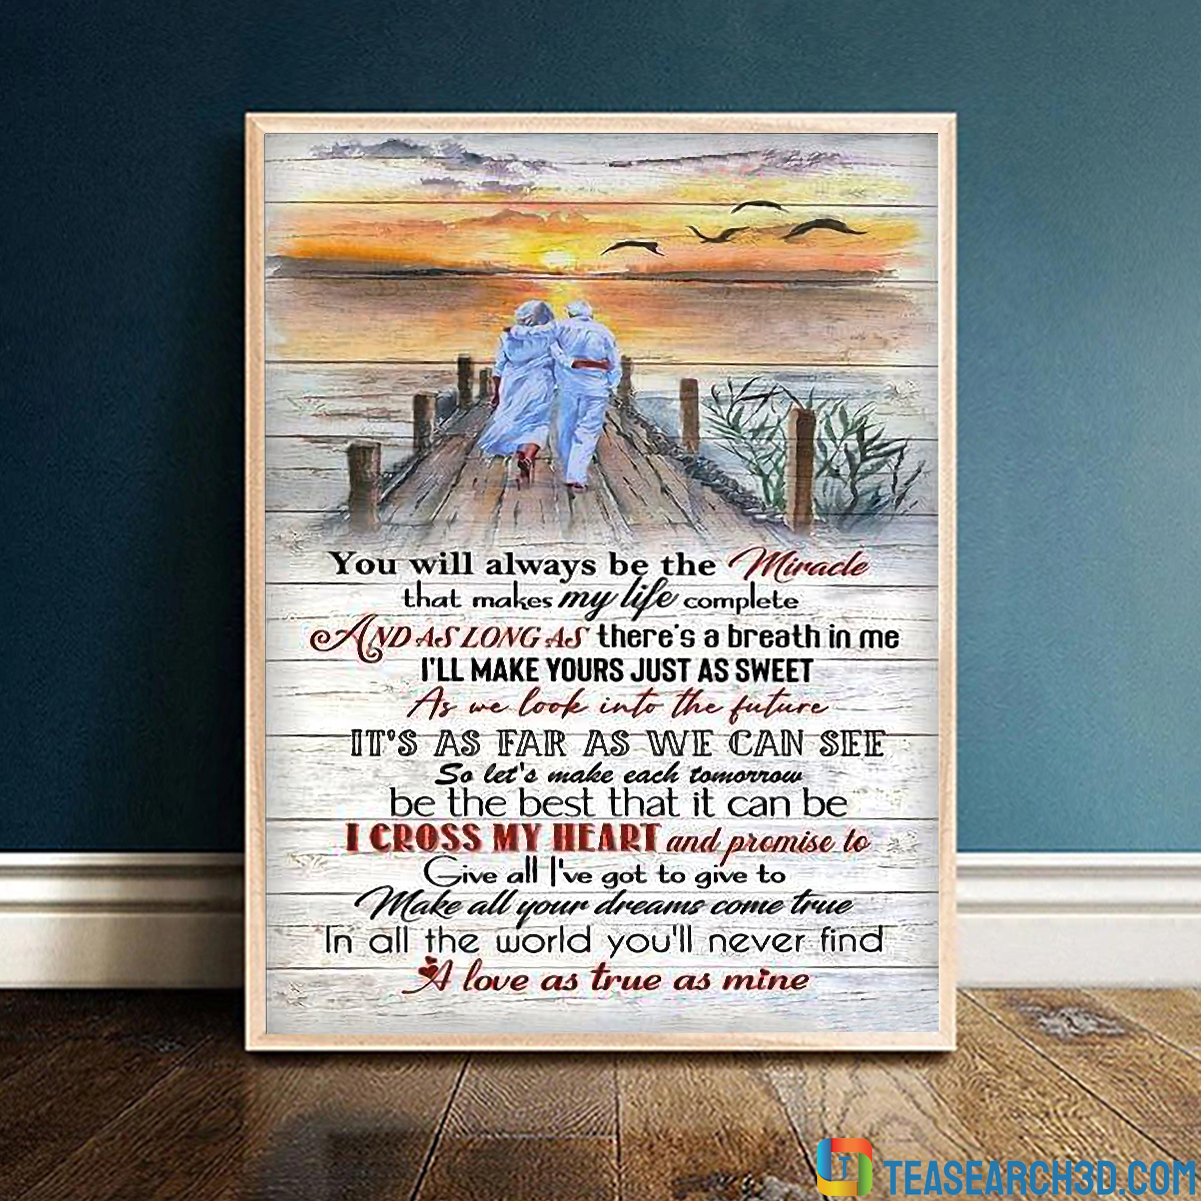 Old couple george strait you'll always be the miracle poster